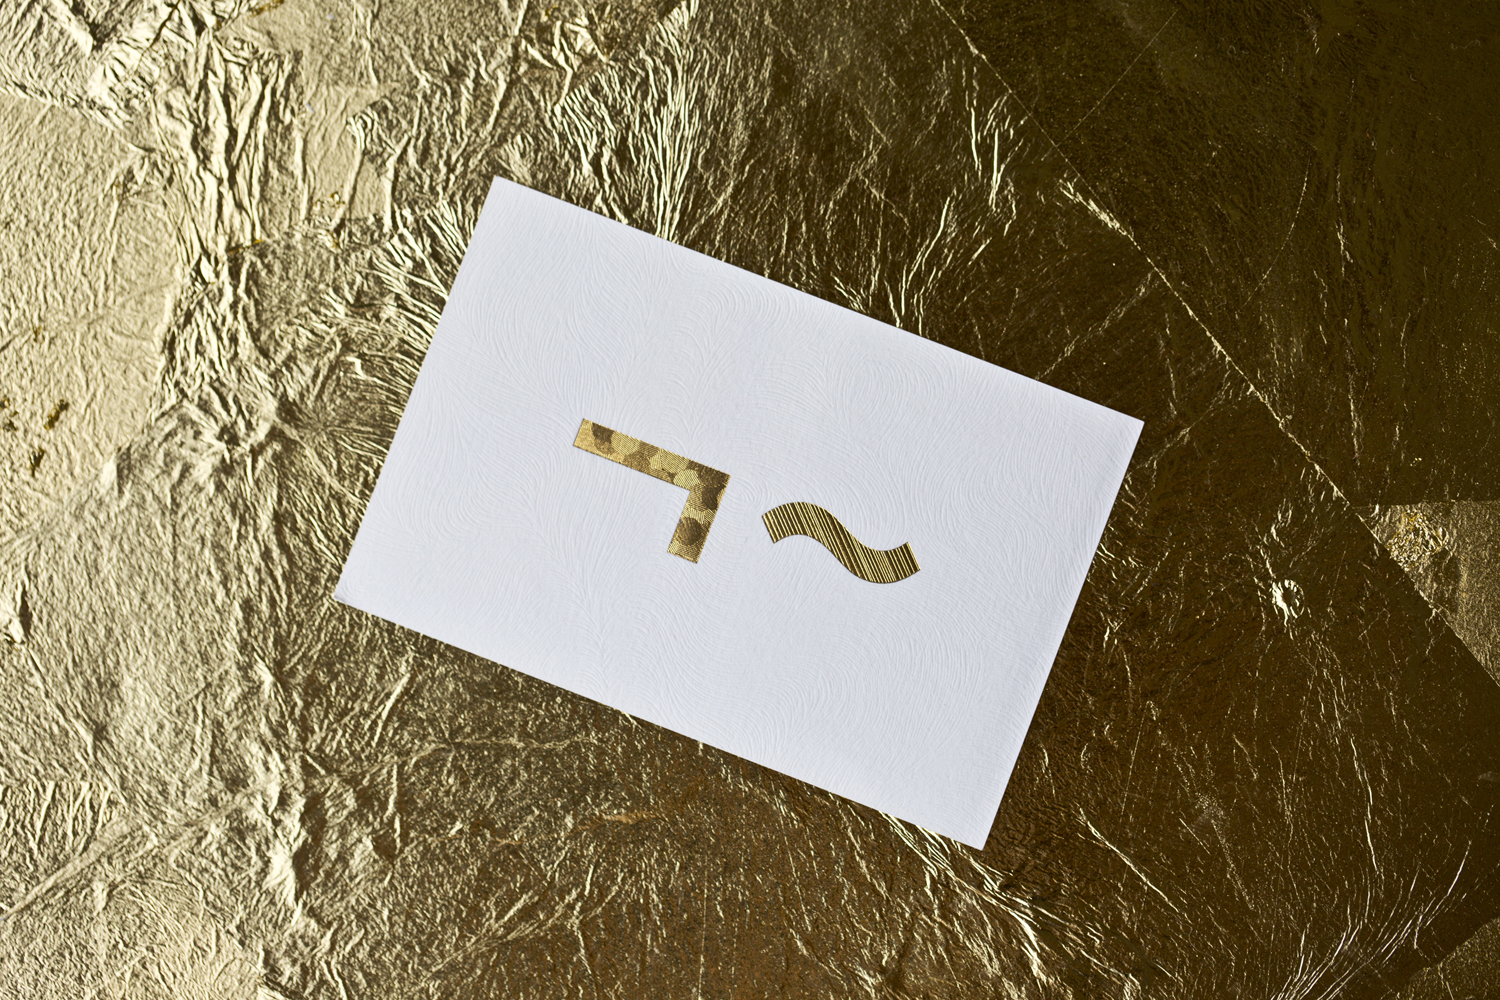 Logo and business cards with gold foil and embossed detail for UK model agency Linden Staub by Bibliothèque.